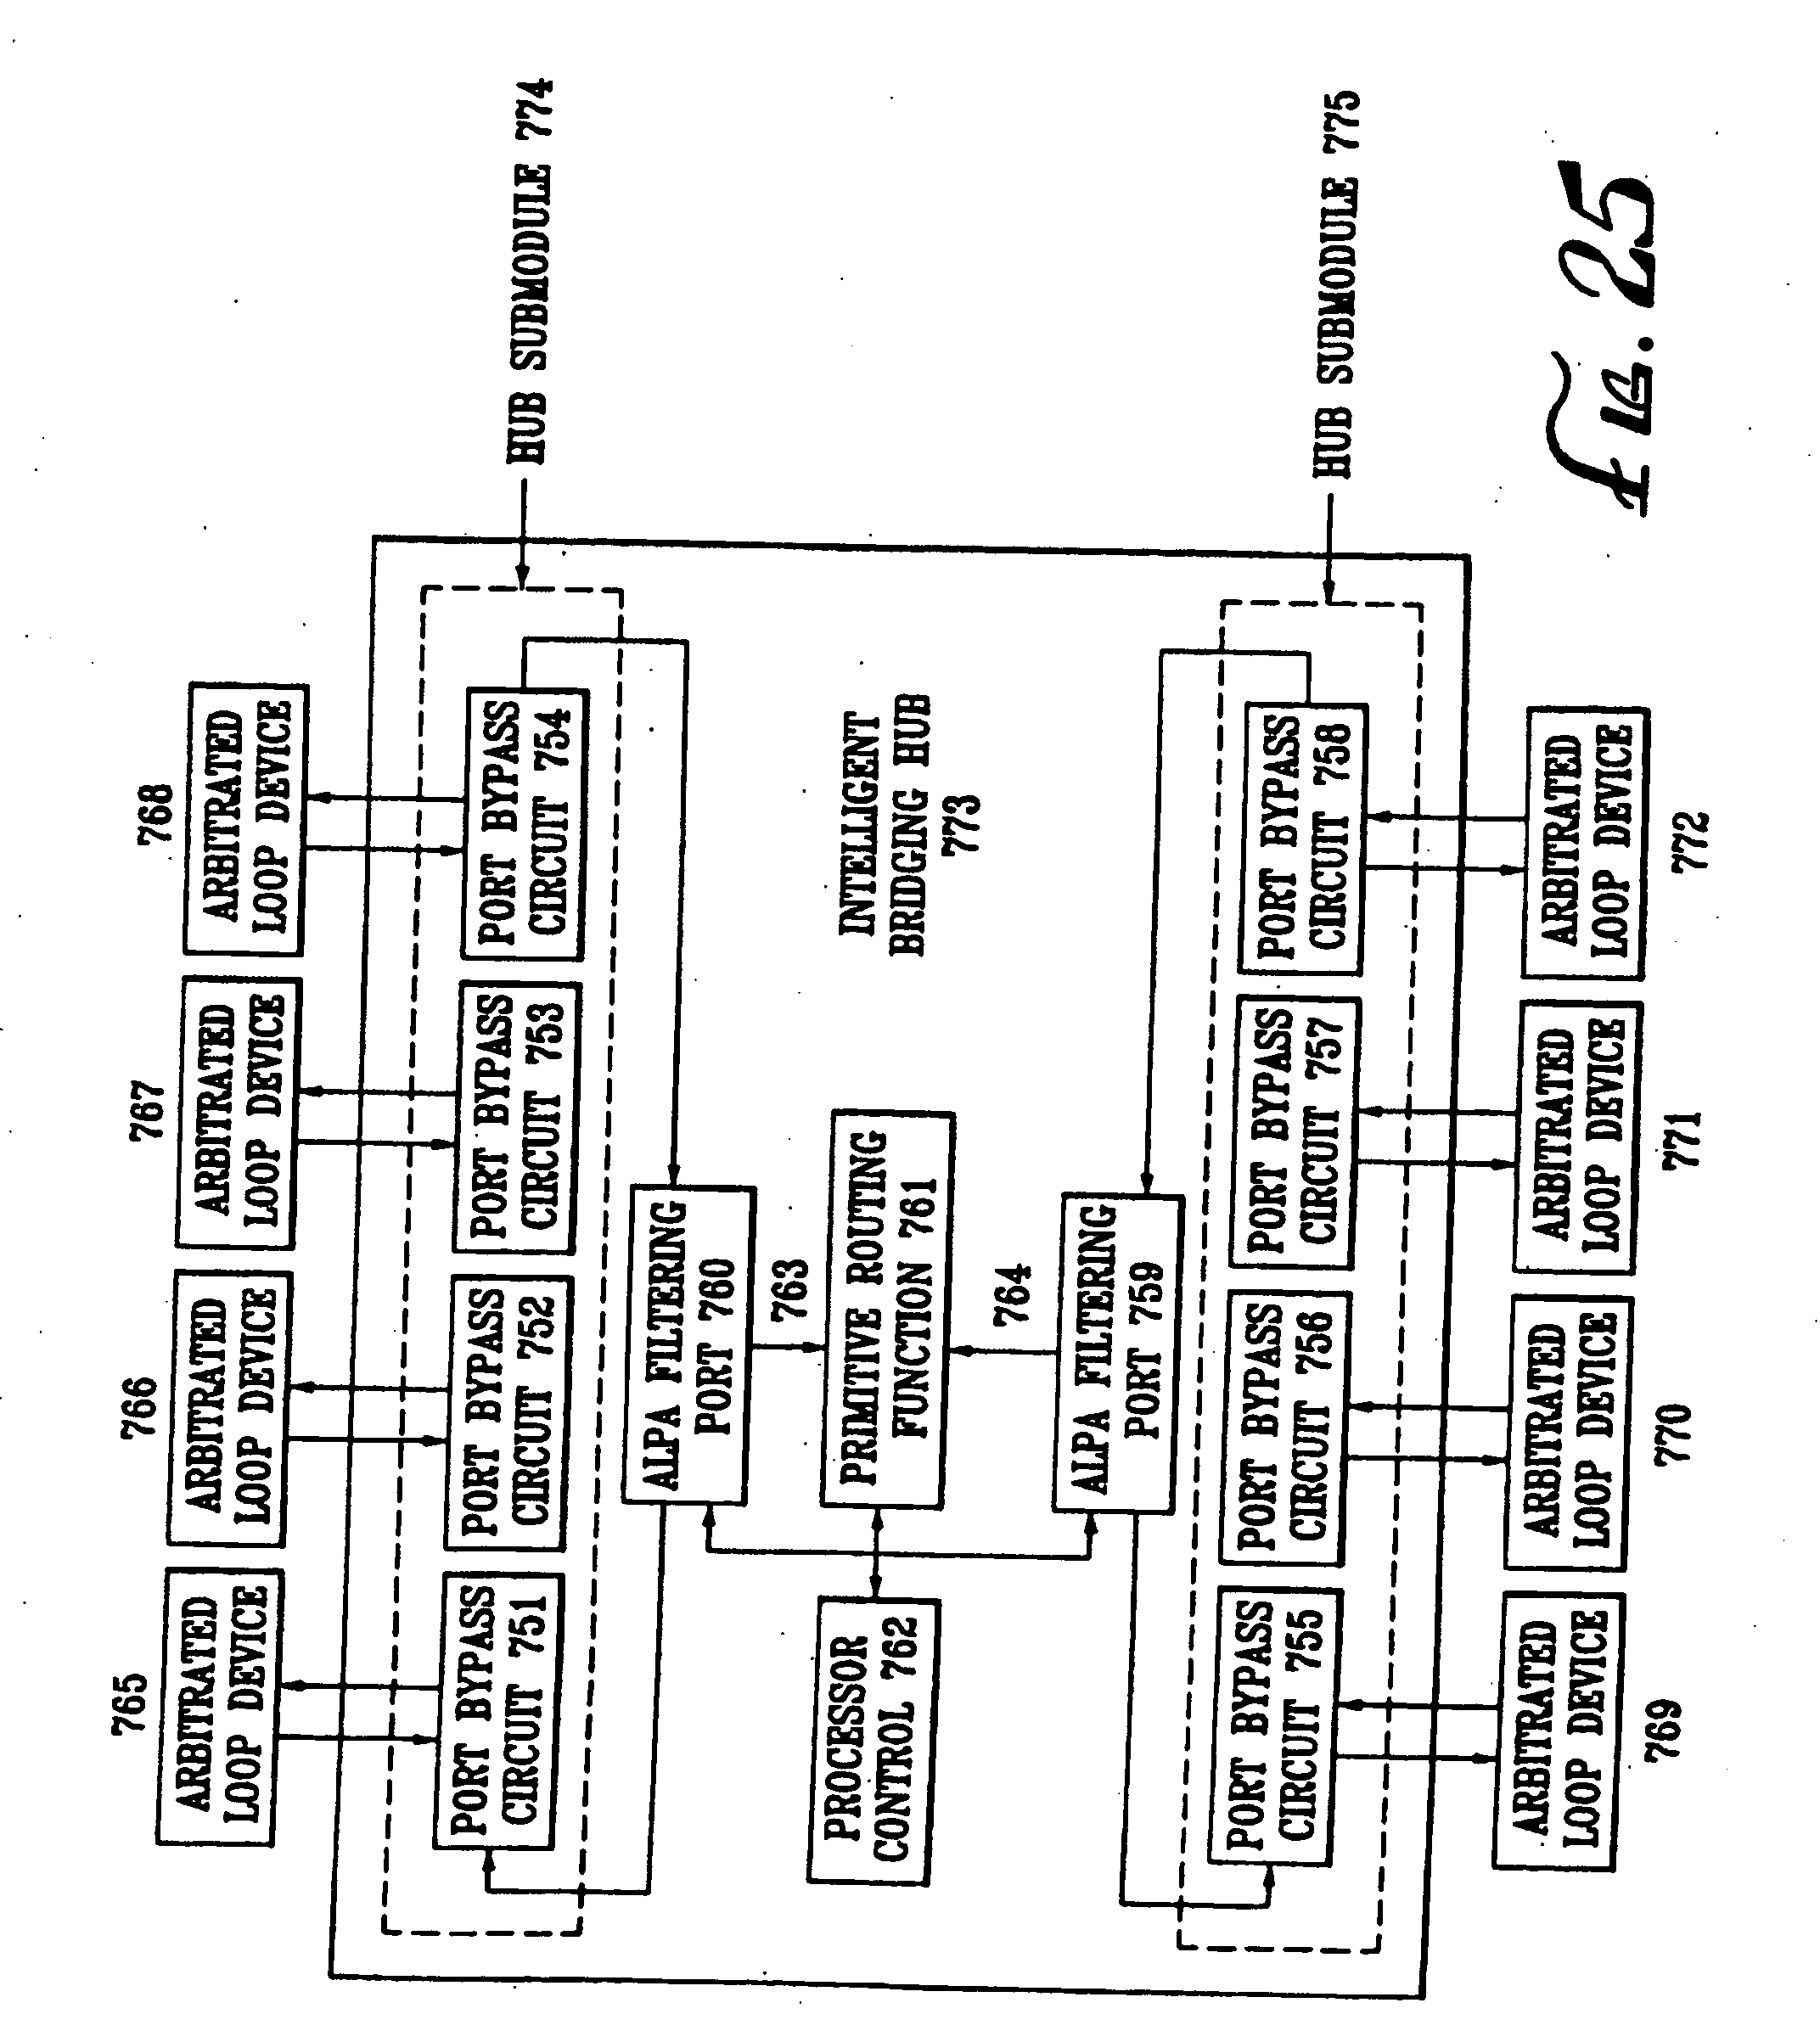 Patent Us20090225772 Methods And Apparatus For Fibre Channel Jbod Wiring Diagram Drawing